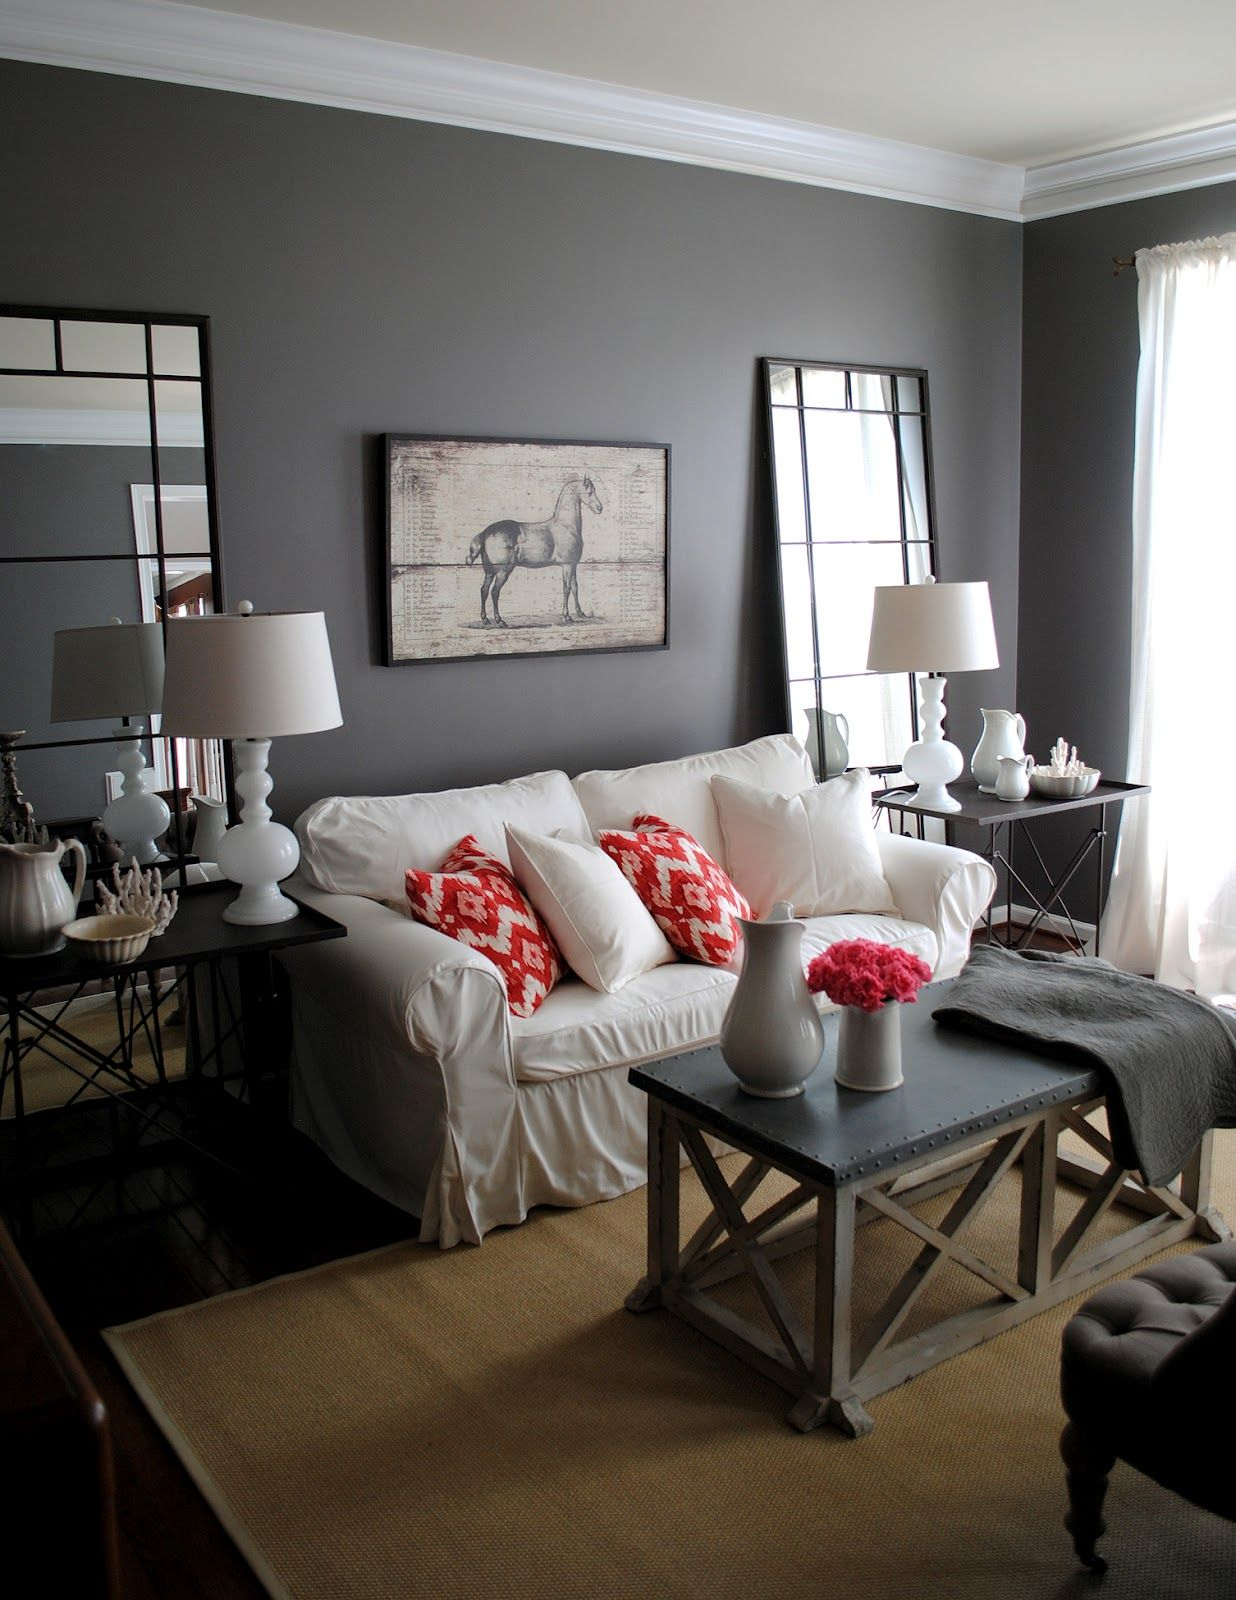 Interior Paint Color Living Room Our House The Living Room Grey Walls Grey And Graphics